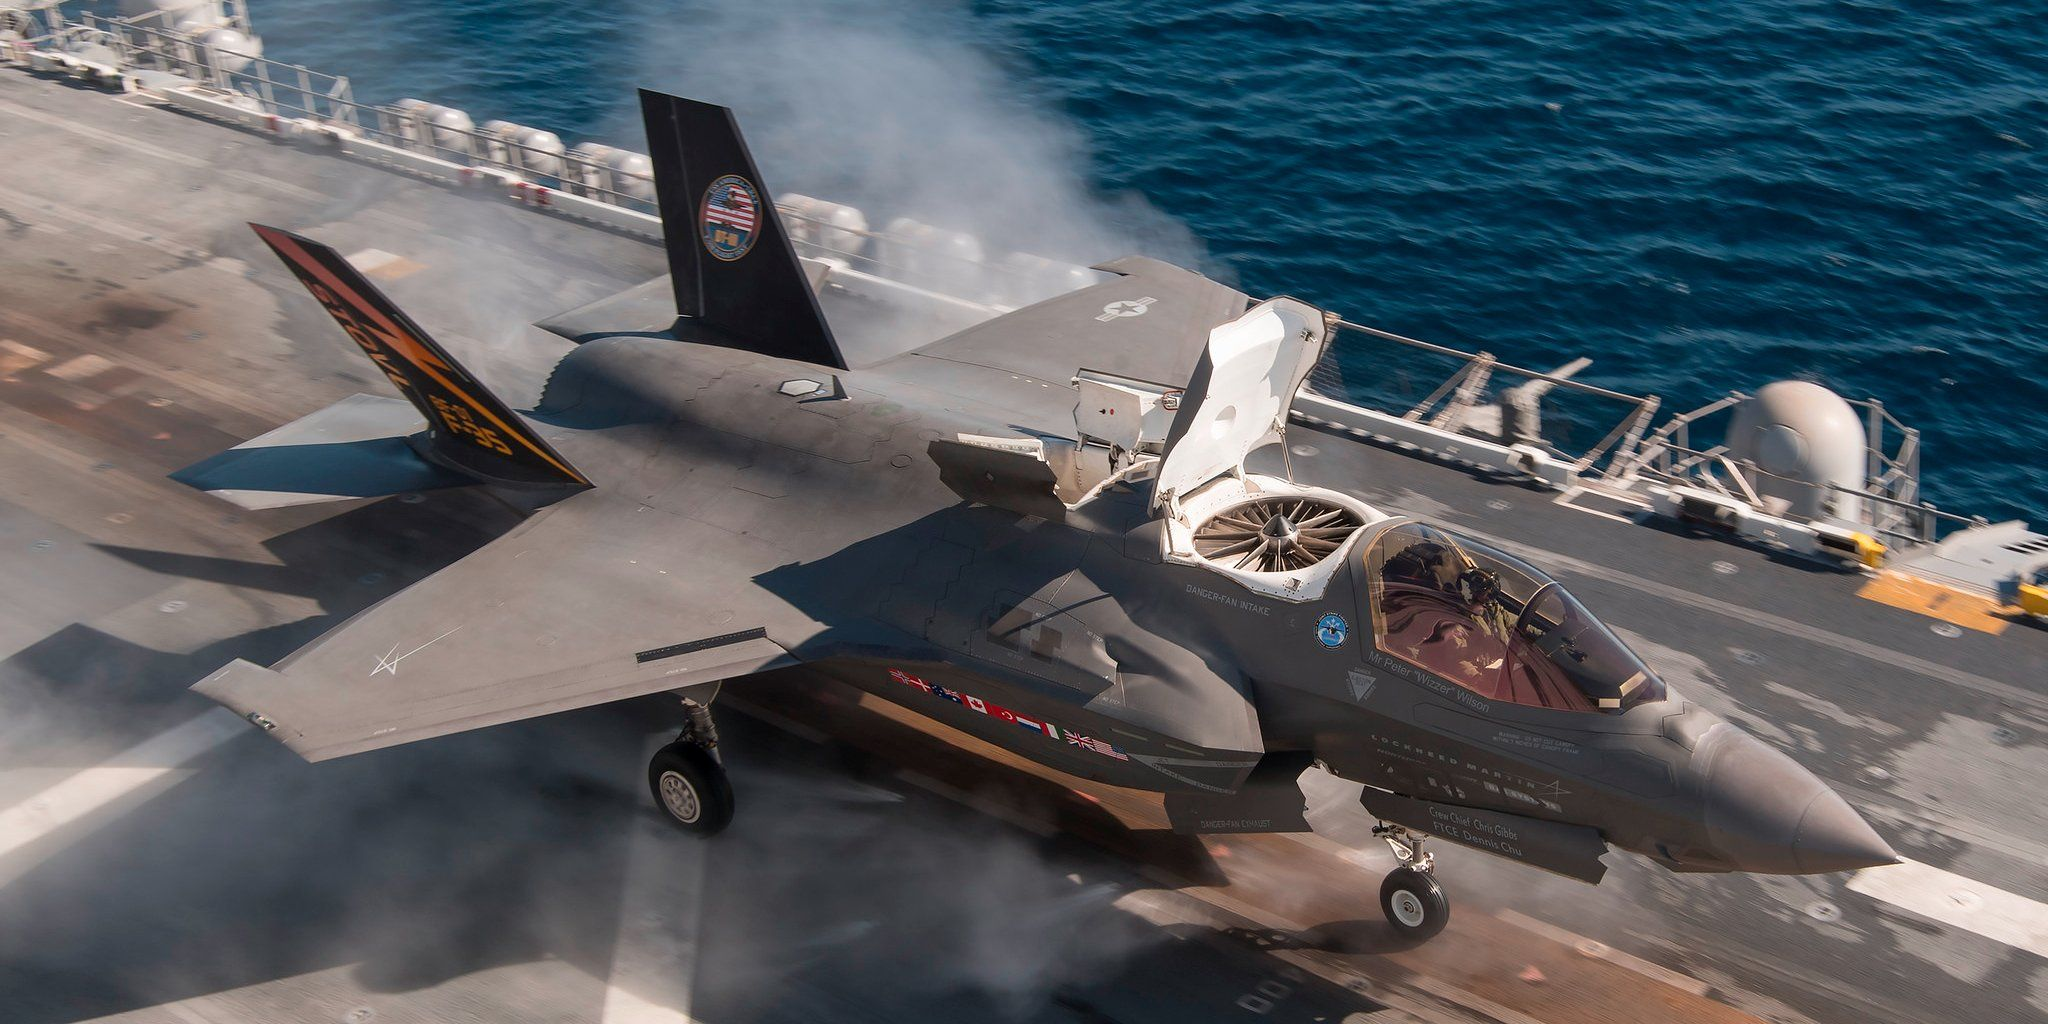 This strange mod to the F35 kills its stealth near